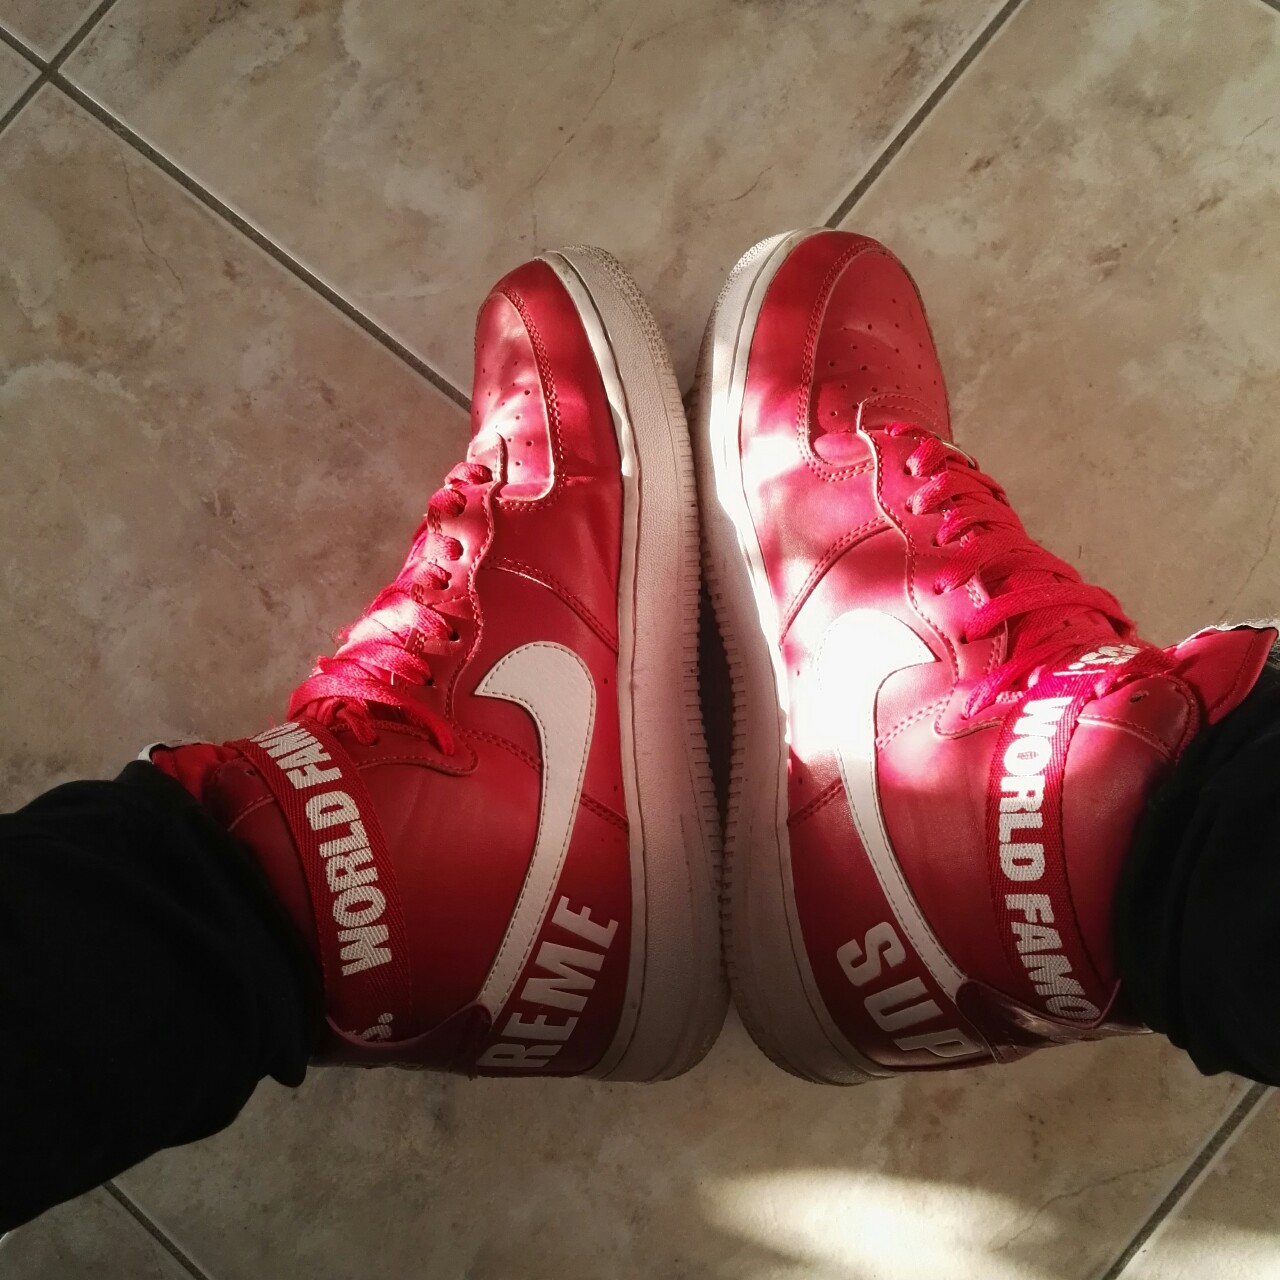 Nike Air Force 1 x Supreme usate, come nuove, solo Depop